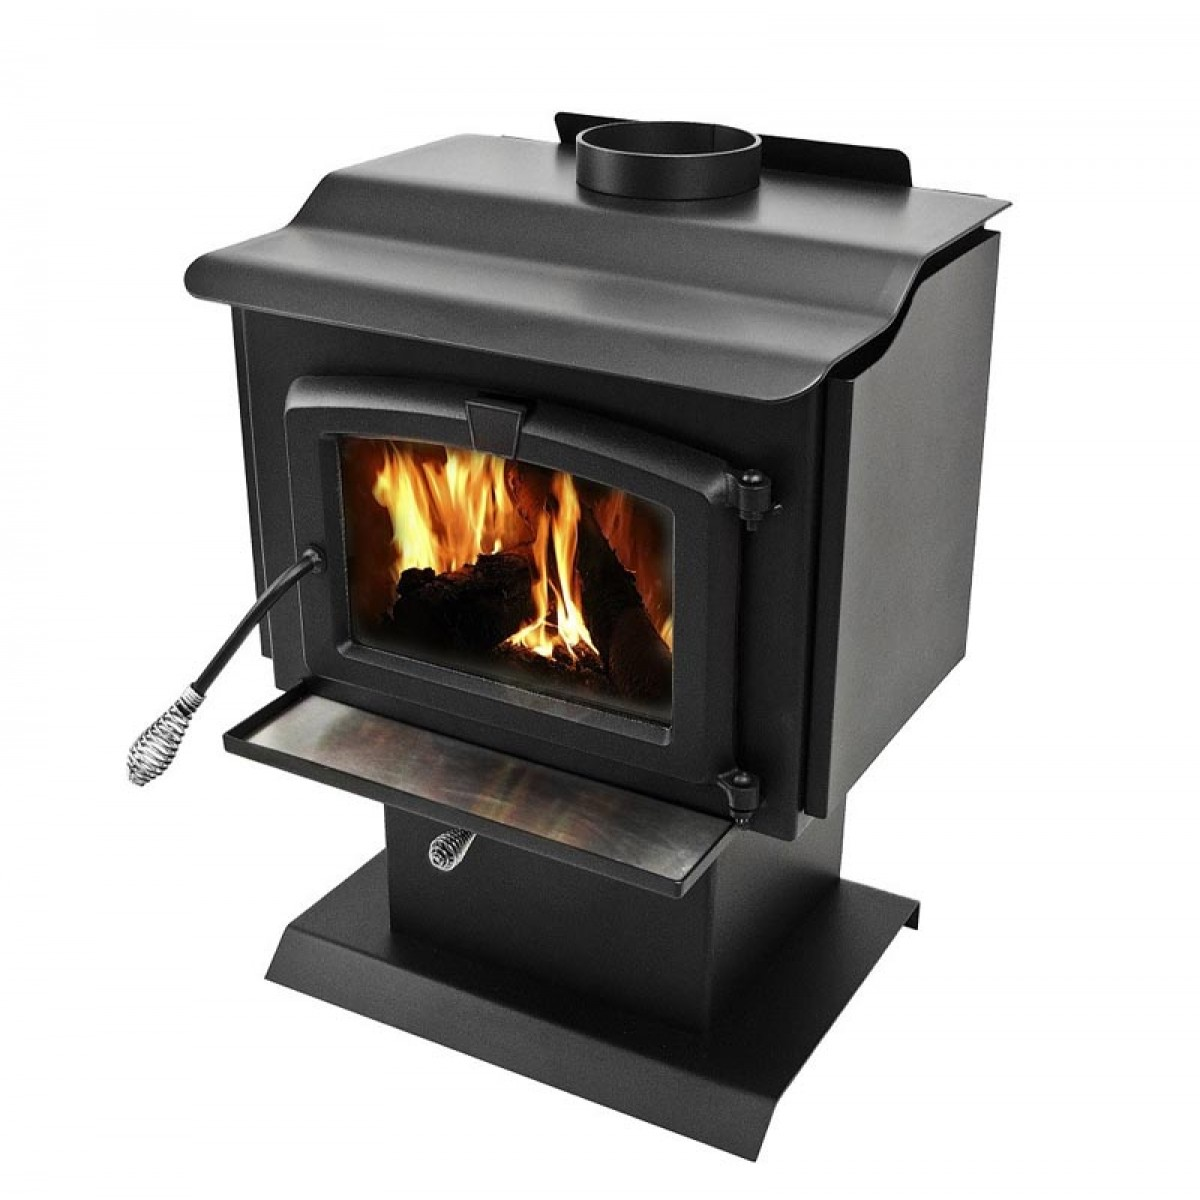 Pleasant hearth small wood burning stove with pedestal Wood burning stoves